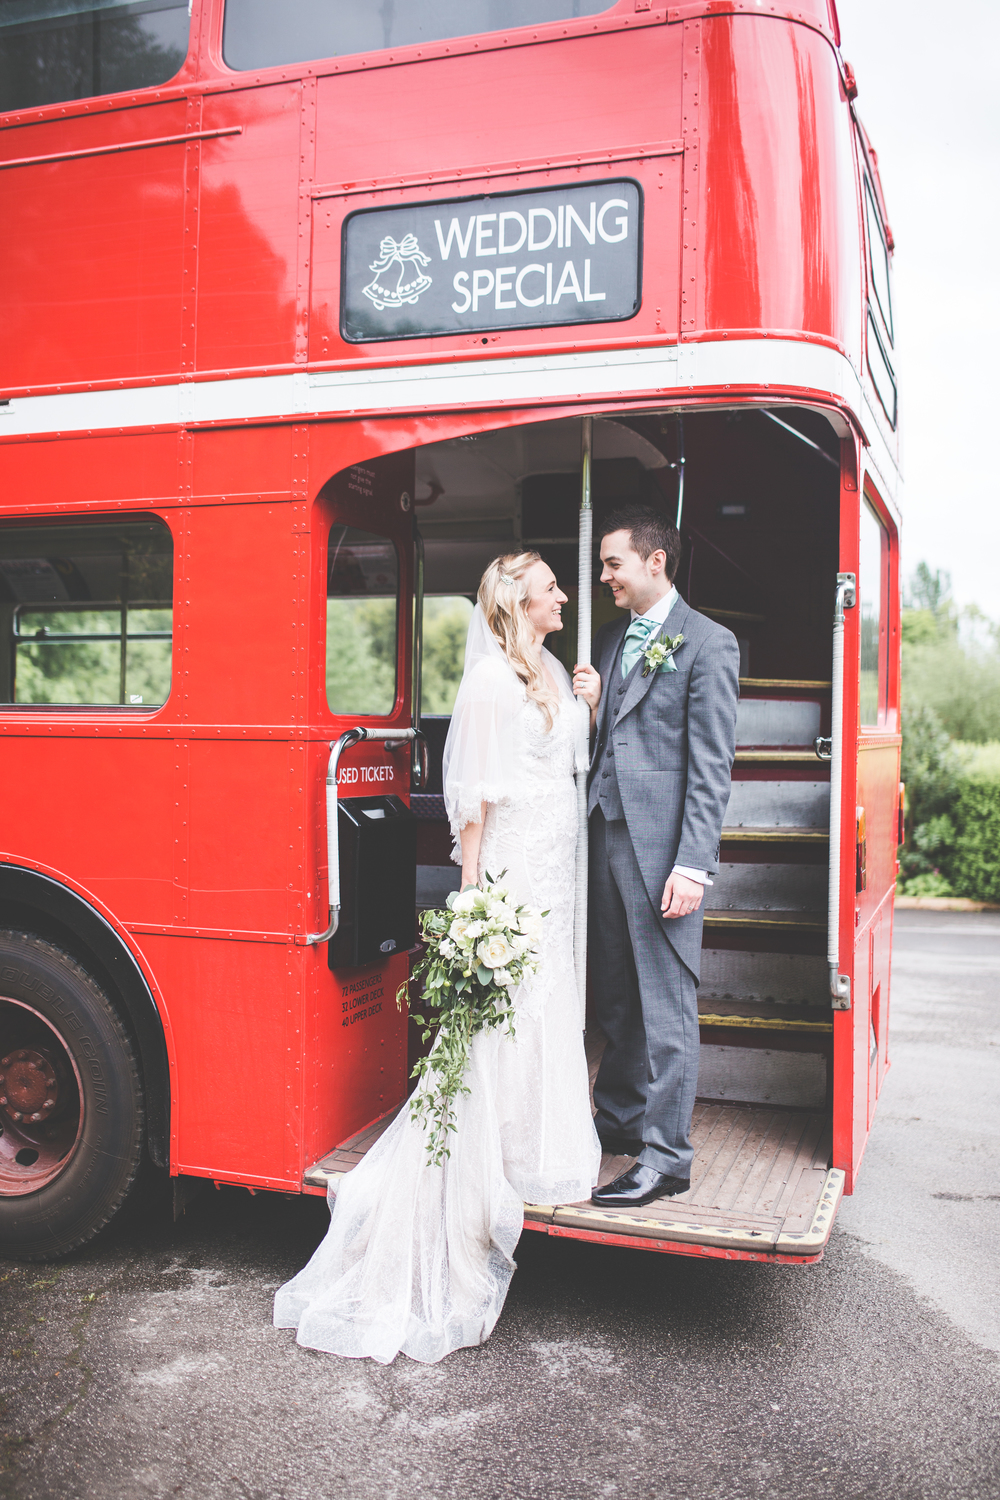 The bride and groom stood on the red double decker bus. -Wedding photography